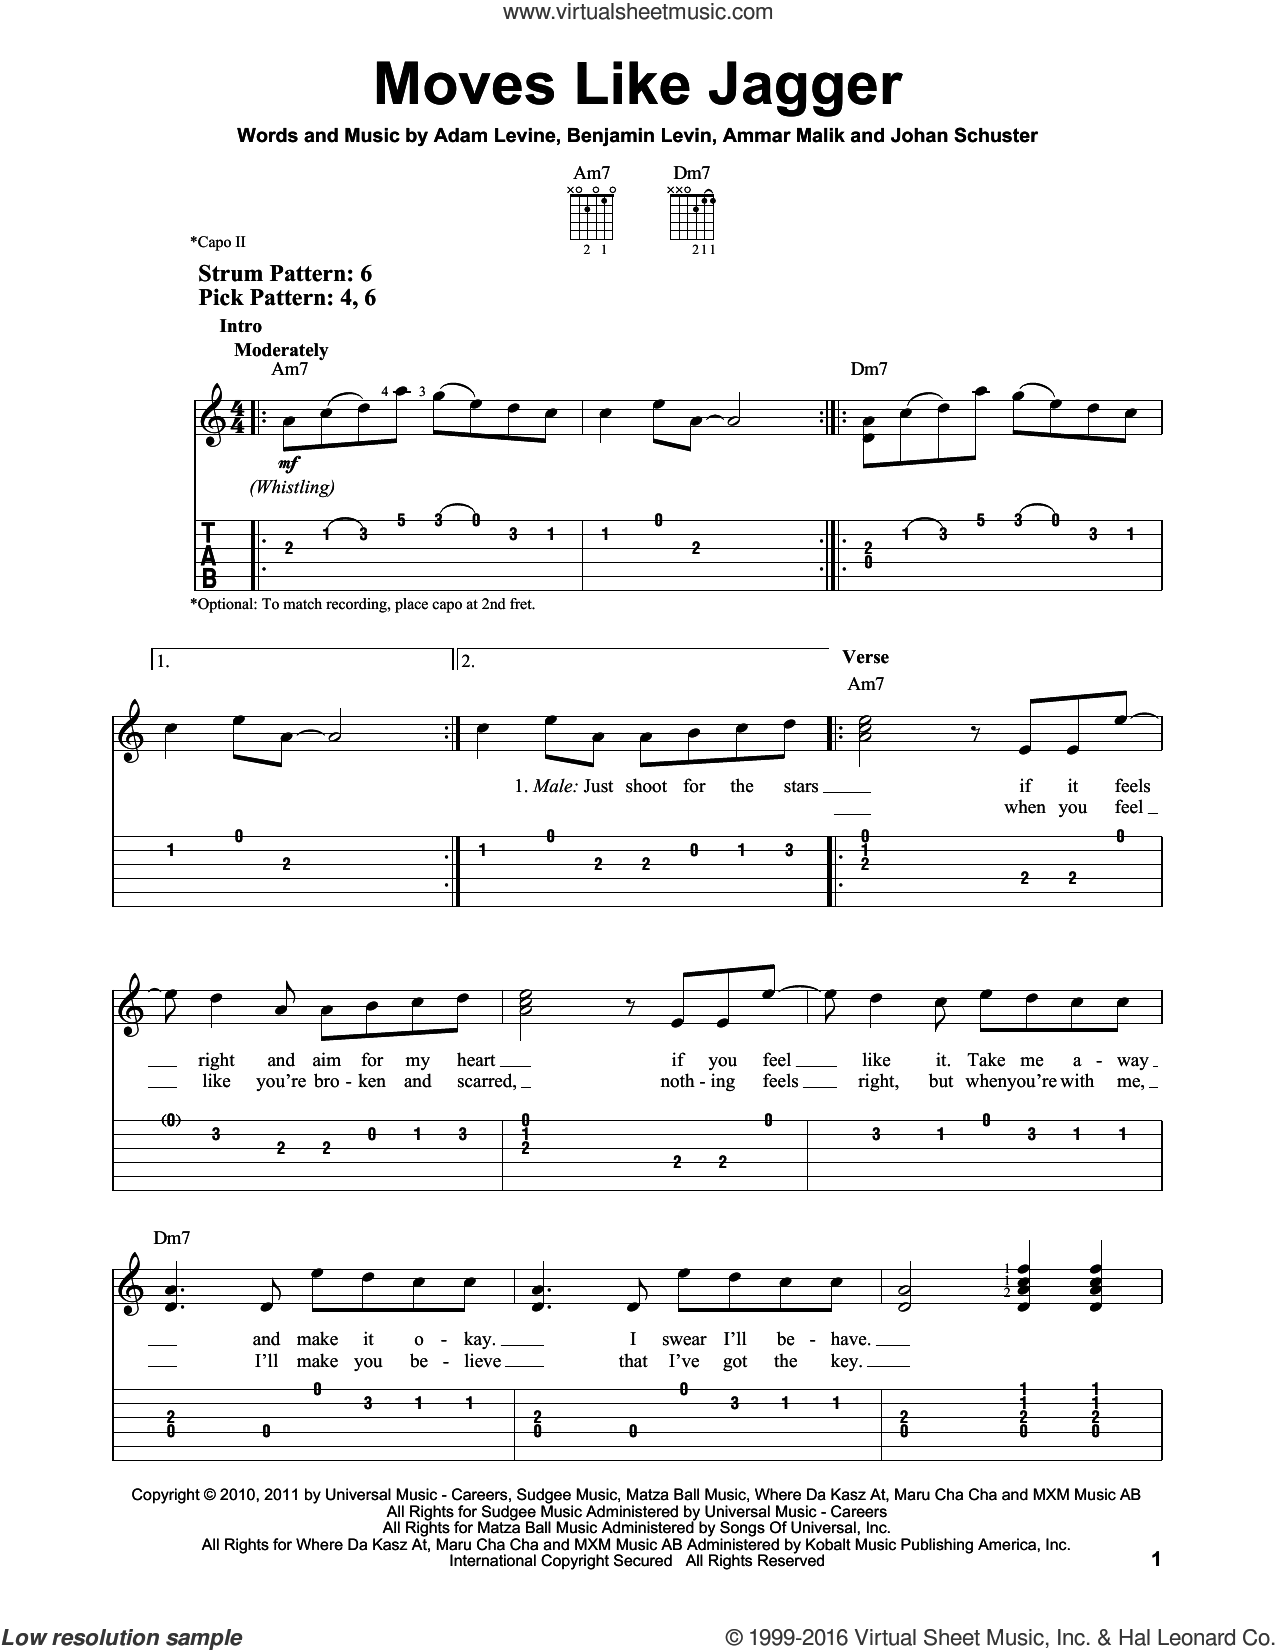 Moves Like Jagger sheet music for guitar solo (easy tablature) by Maroon 5, Adam Levine, Ammar Malk, Benjamin Levin and Johan Schuster, easy guitar (easy tablature)